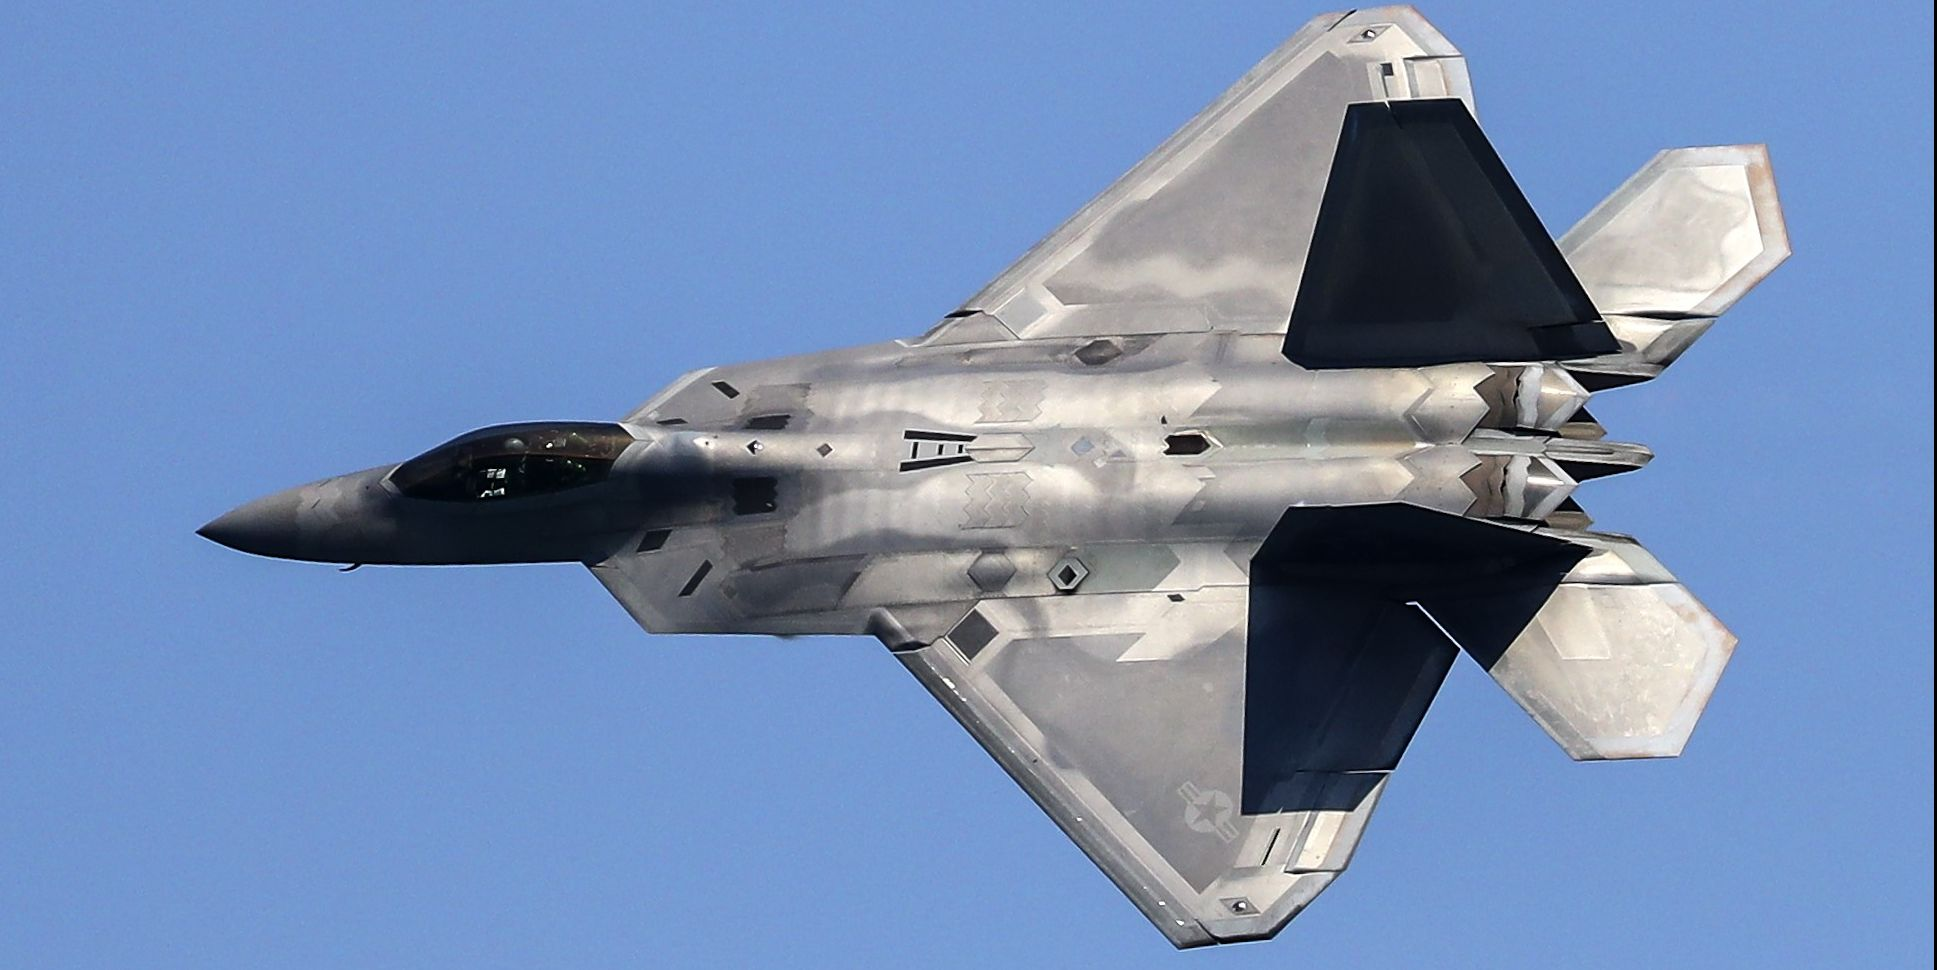 Unexplained Images Shows F-22 Raptor in Russian Fighter's Sights